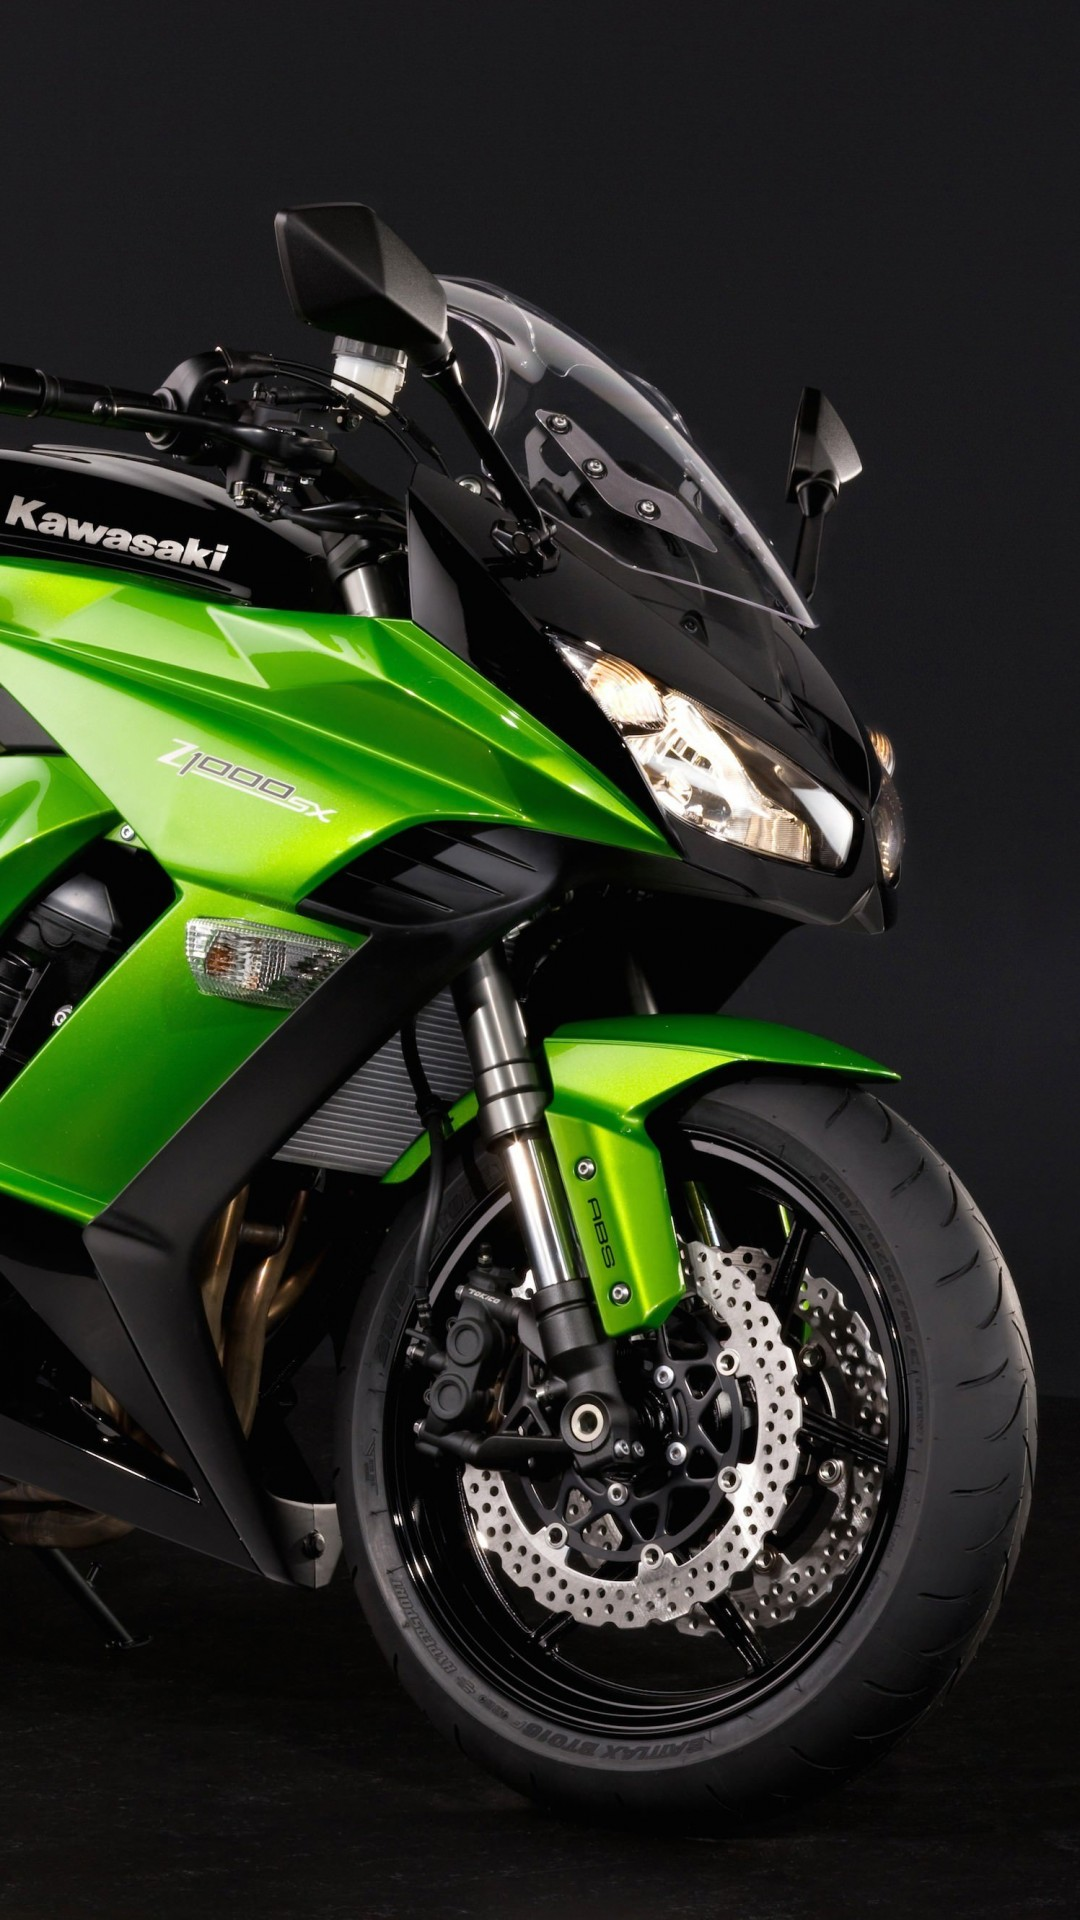 Kawasaki Kawasaki Z1000SX Wallpaper for SONY Xperia Z3